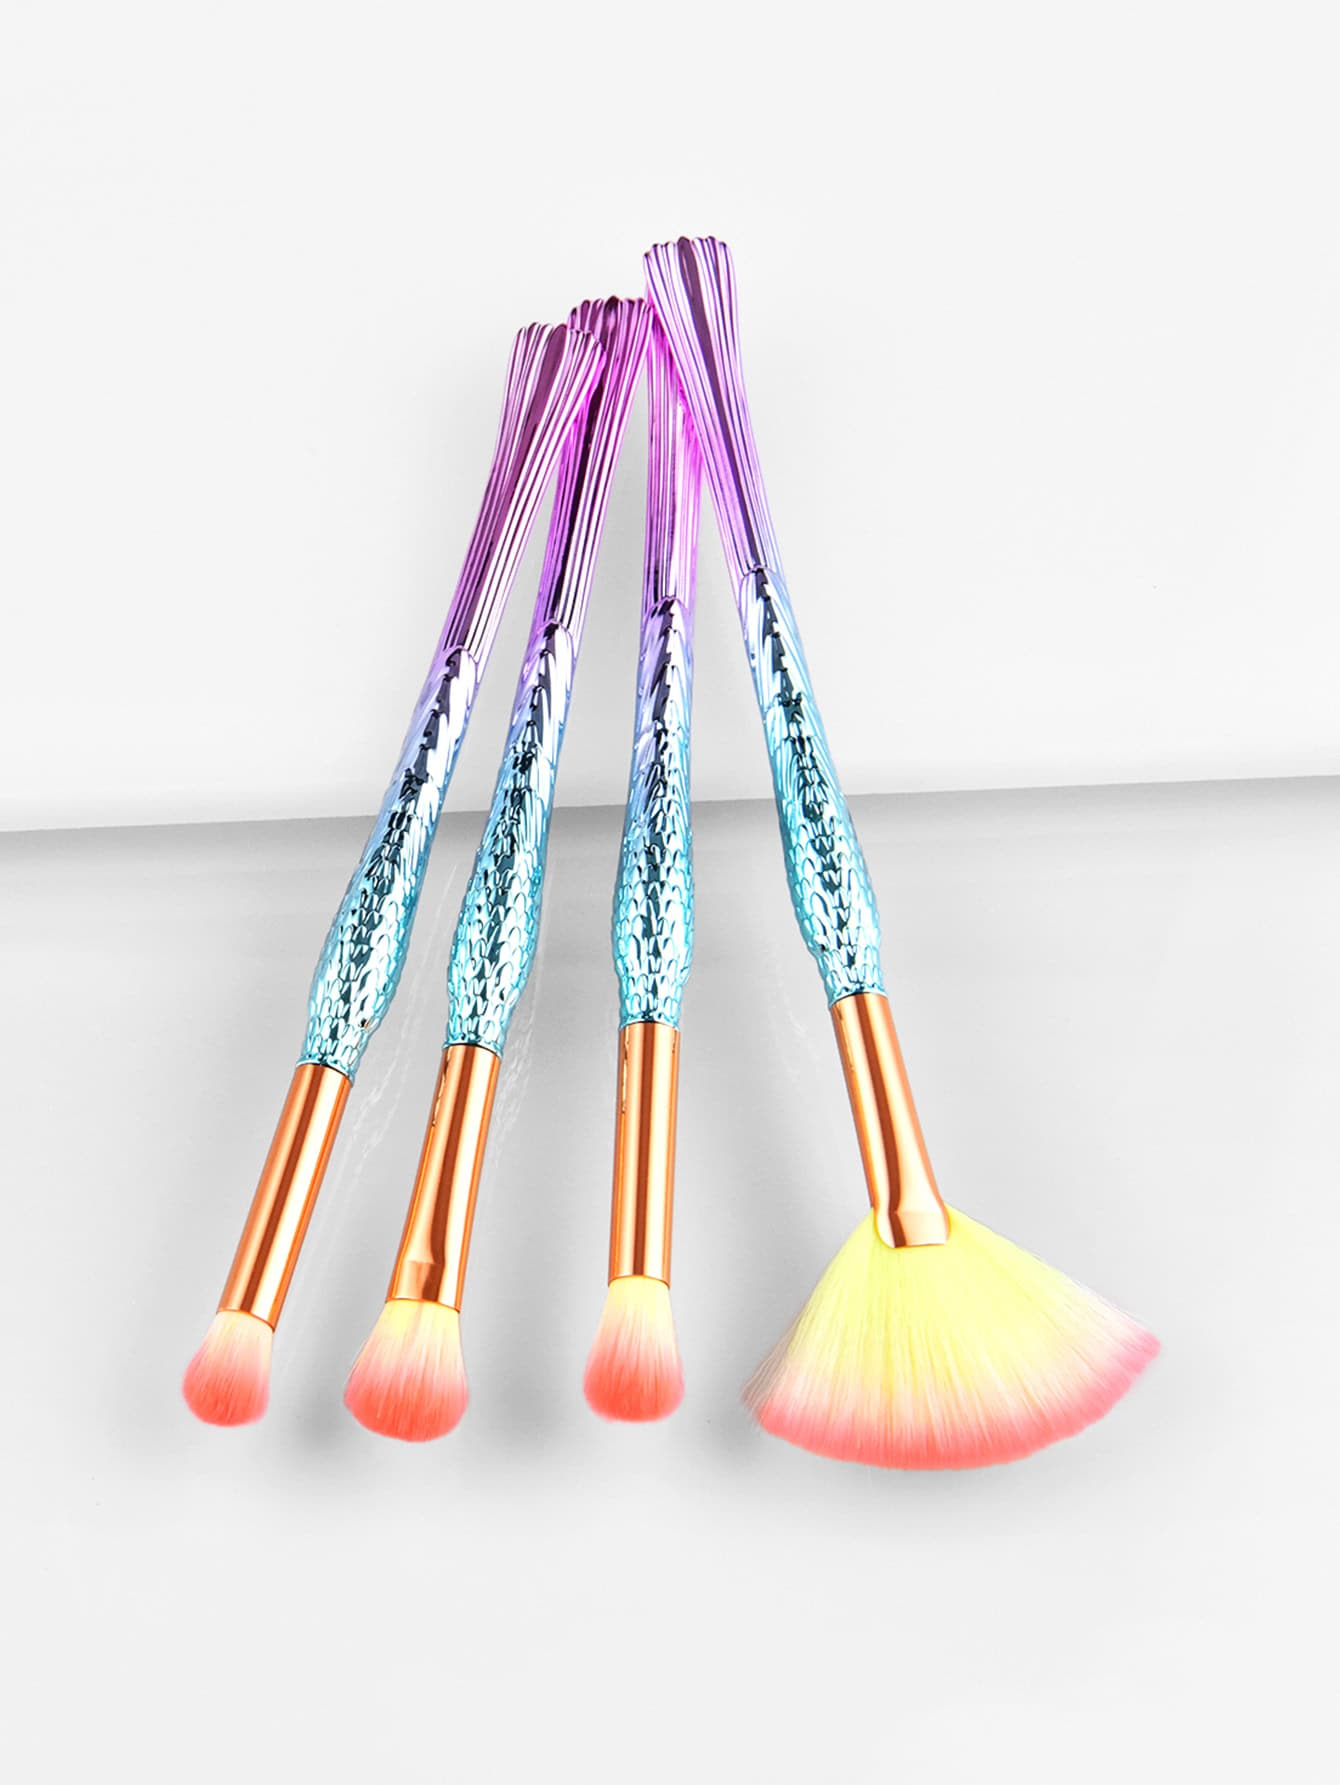 Image of Ombre Handle Eye Brush 4pcs